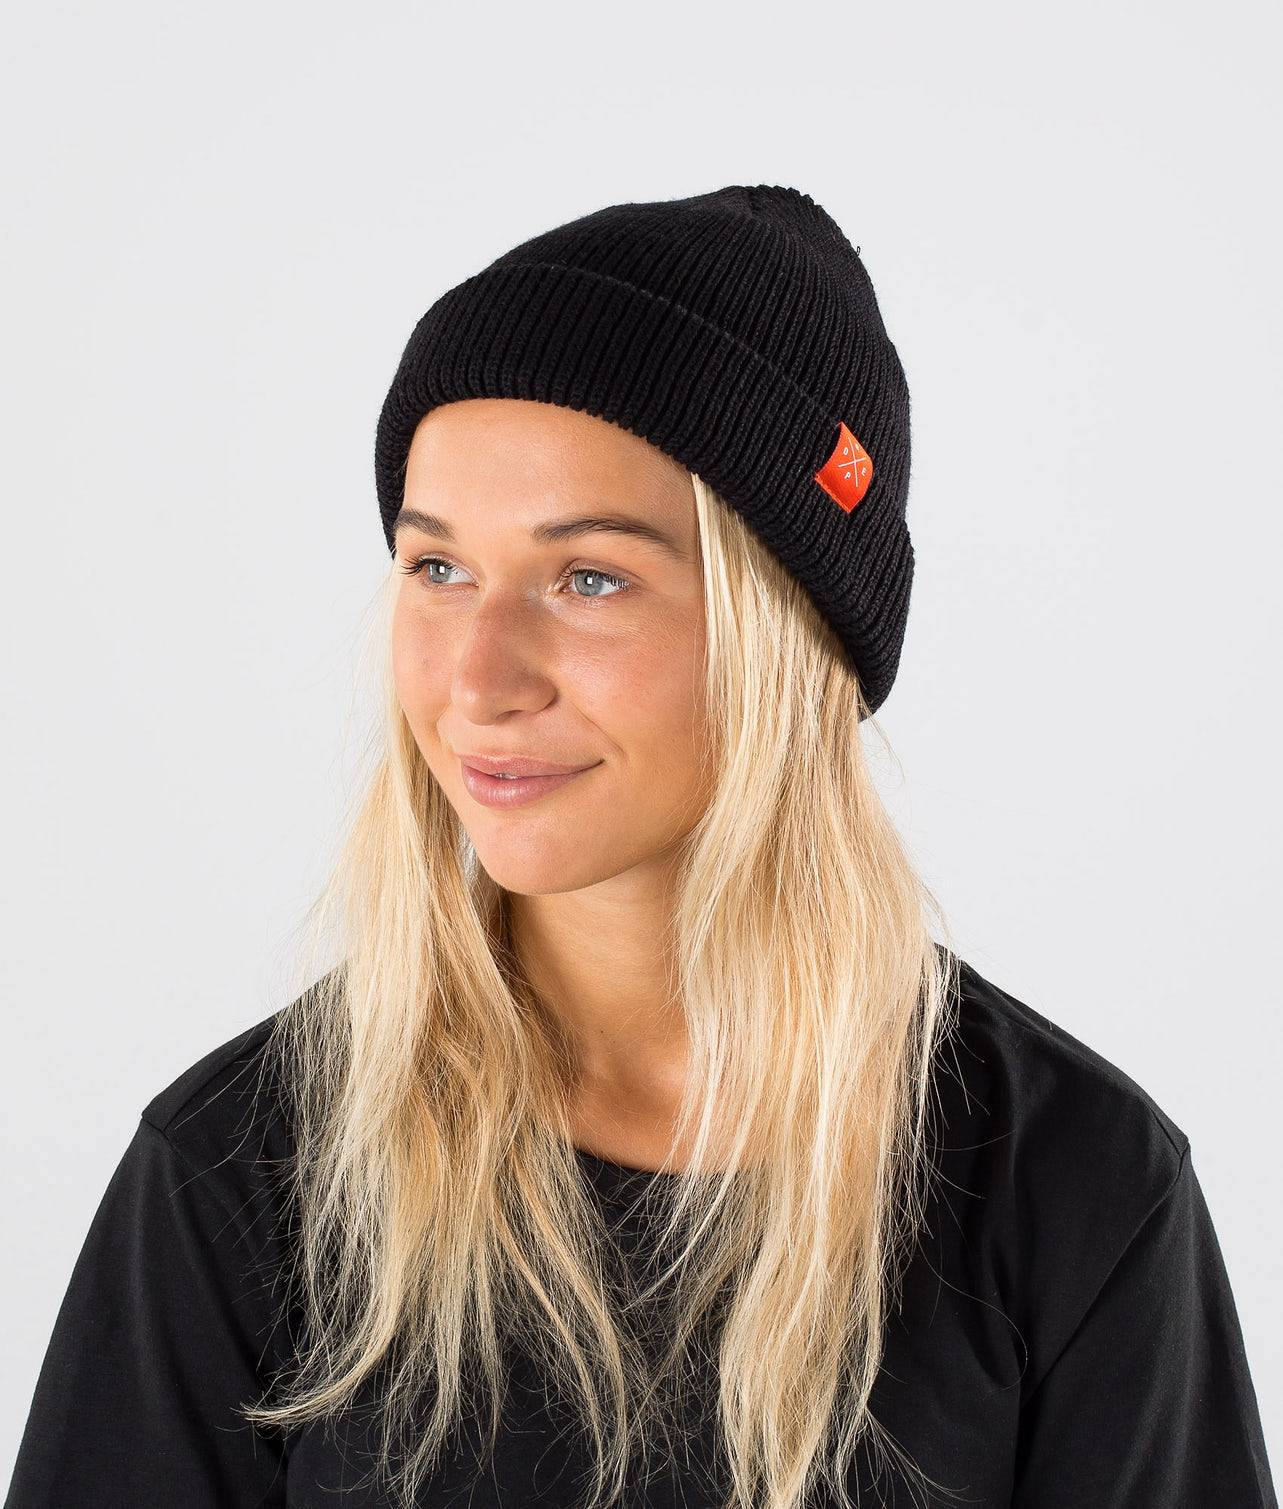 Buy Drifter Beanie from Dope at Ridestore.com - Always free shipping, free returns and 30 days money back guarantee